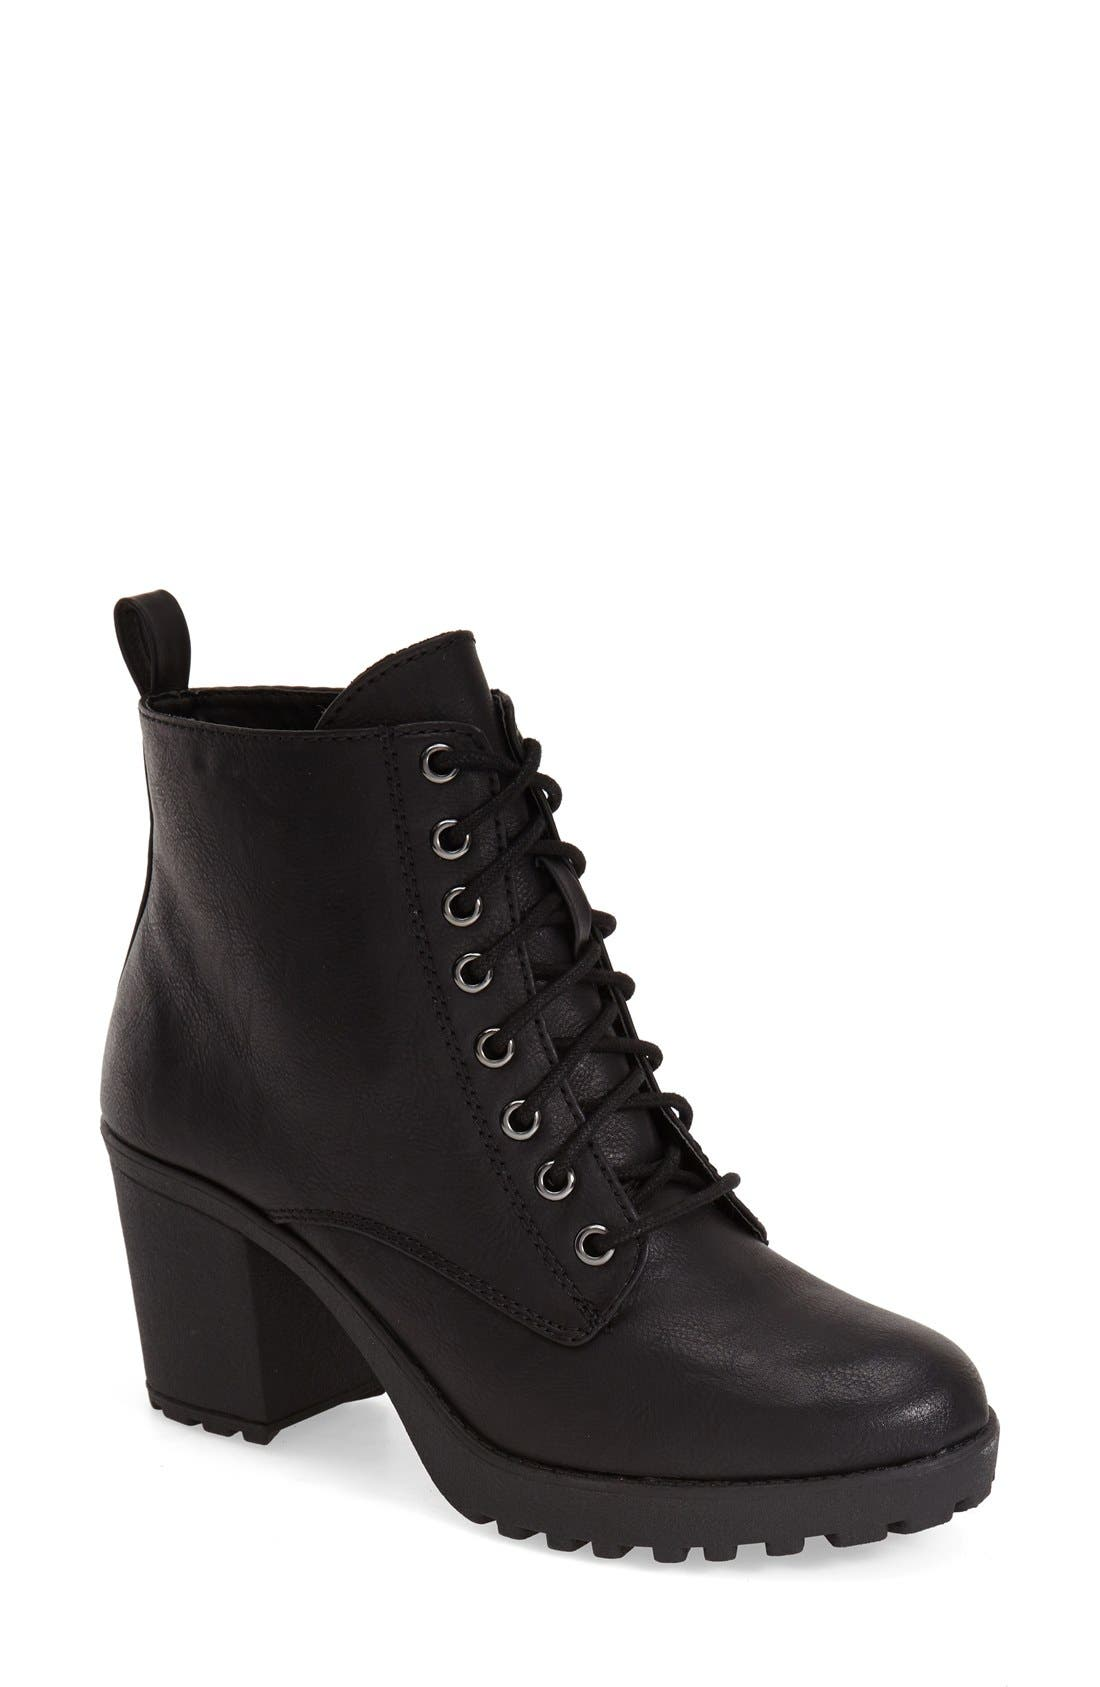 Main Image - MIA 'Kat' Lace-Up Lug Bootie (Women)